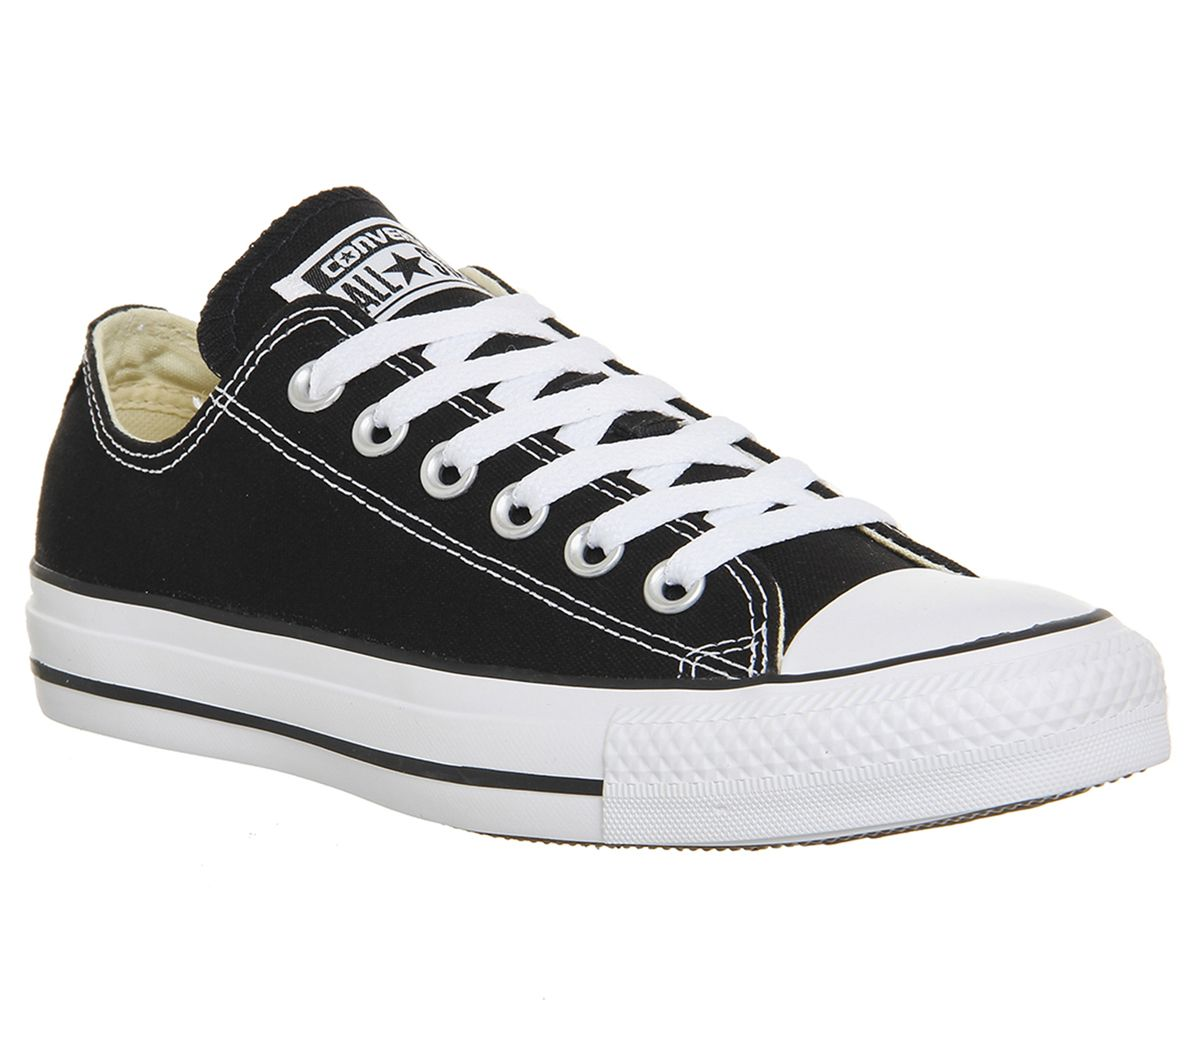 cf19234ab42981 Converse All Star Low Black Canvas - Unisex Sports